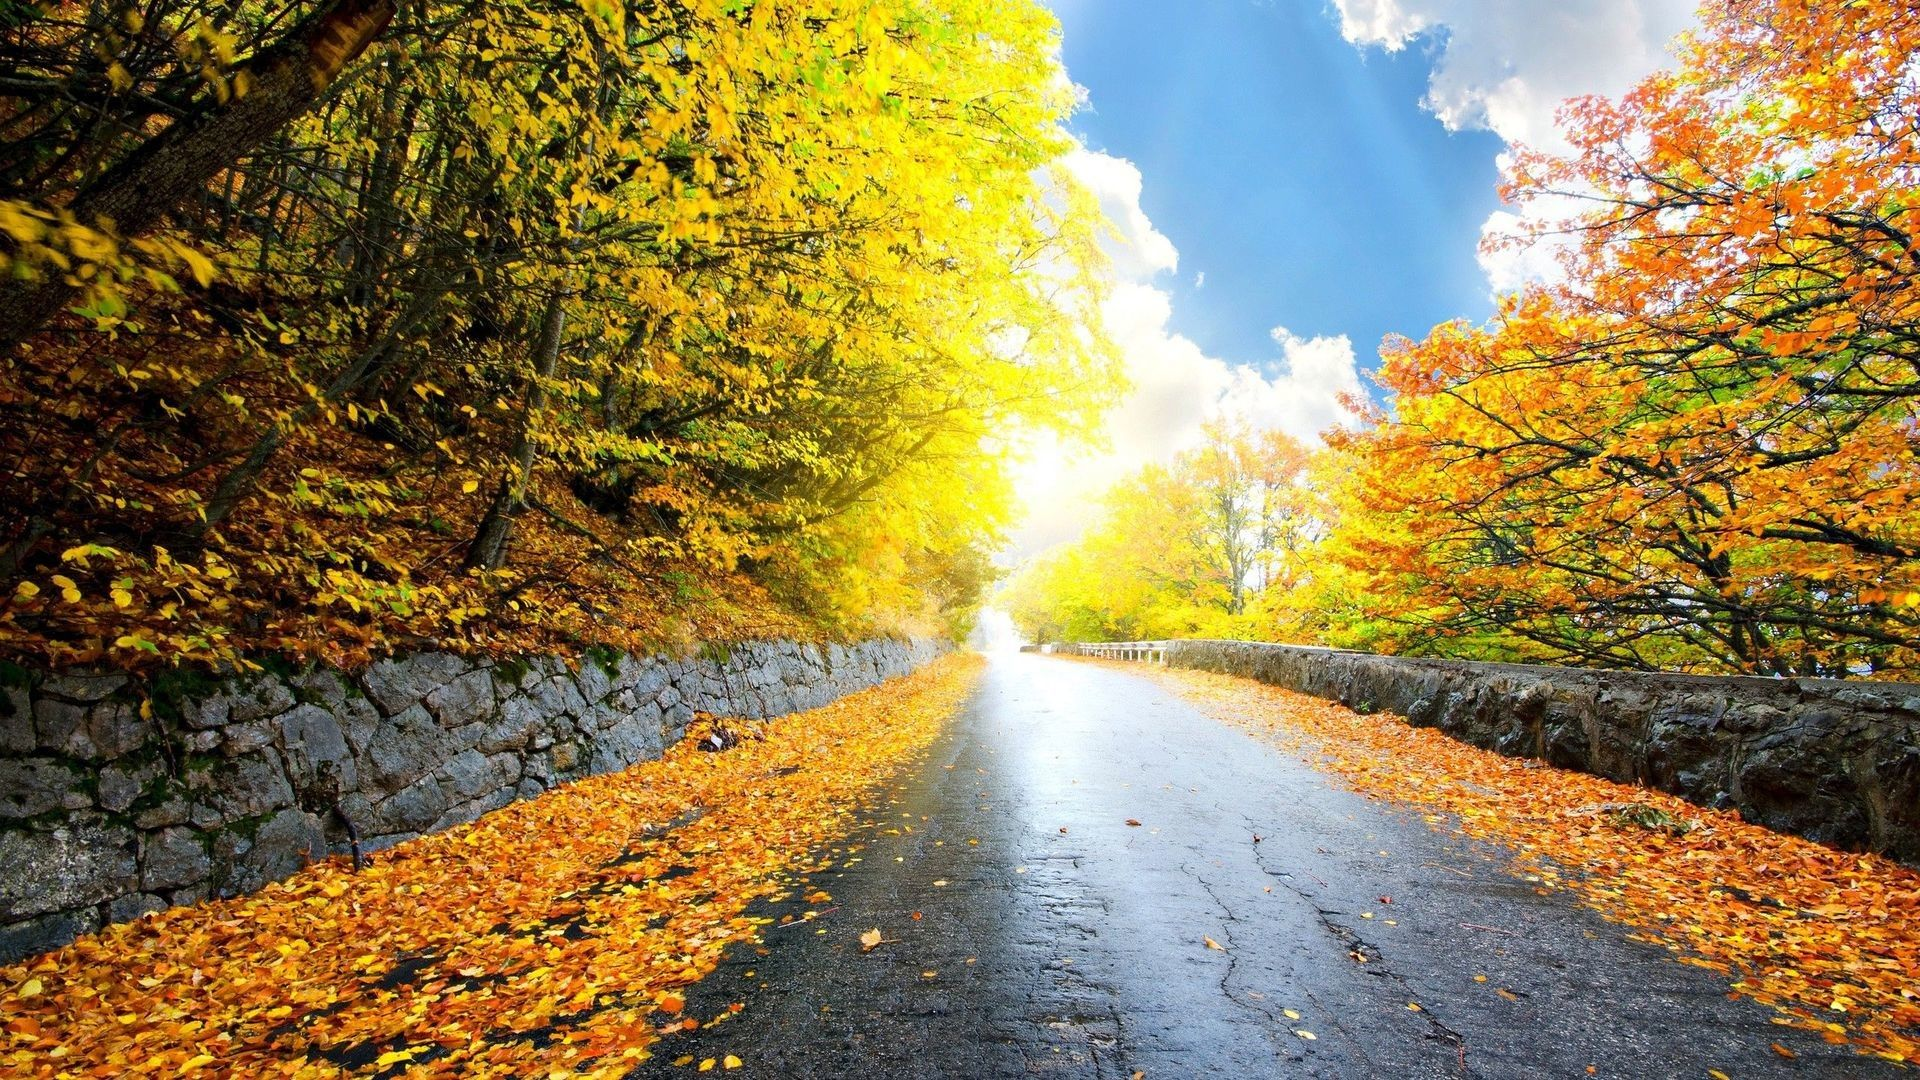 1920x1080 Road In The Autumn Mountains Hd Wallpaper 1920x1080 Road Mountain Wallpaper Road Autumn Day